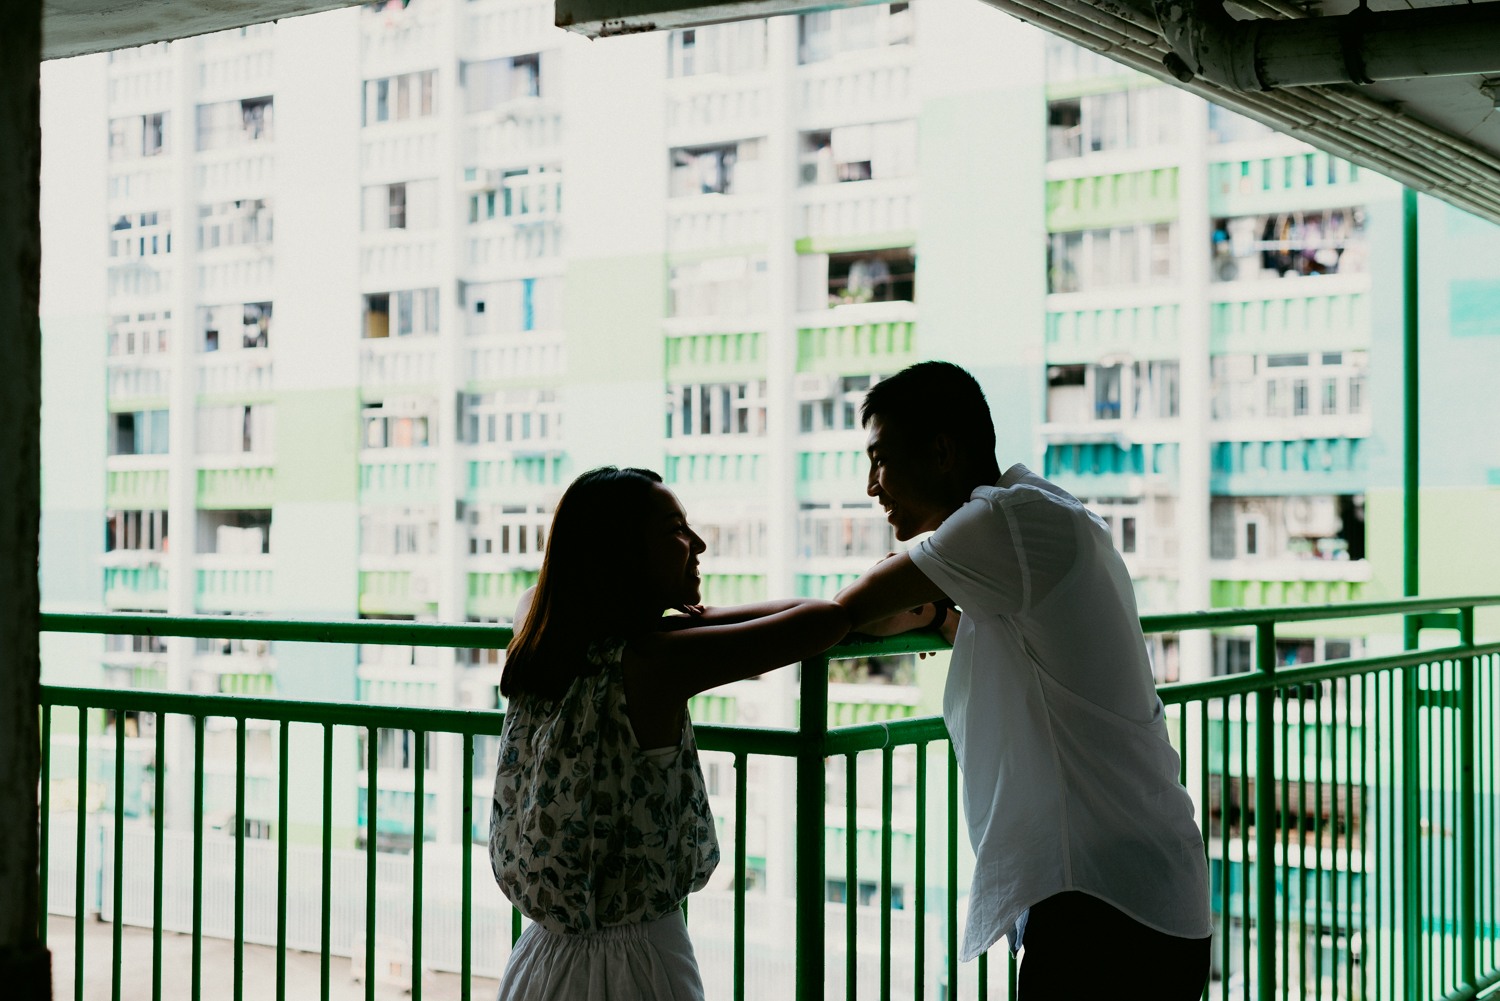 Hong_Kong_Kowloon_Destination_Engagement_Shoot-49.JPG